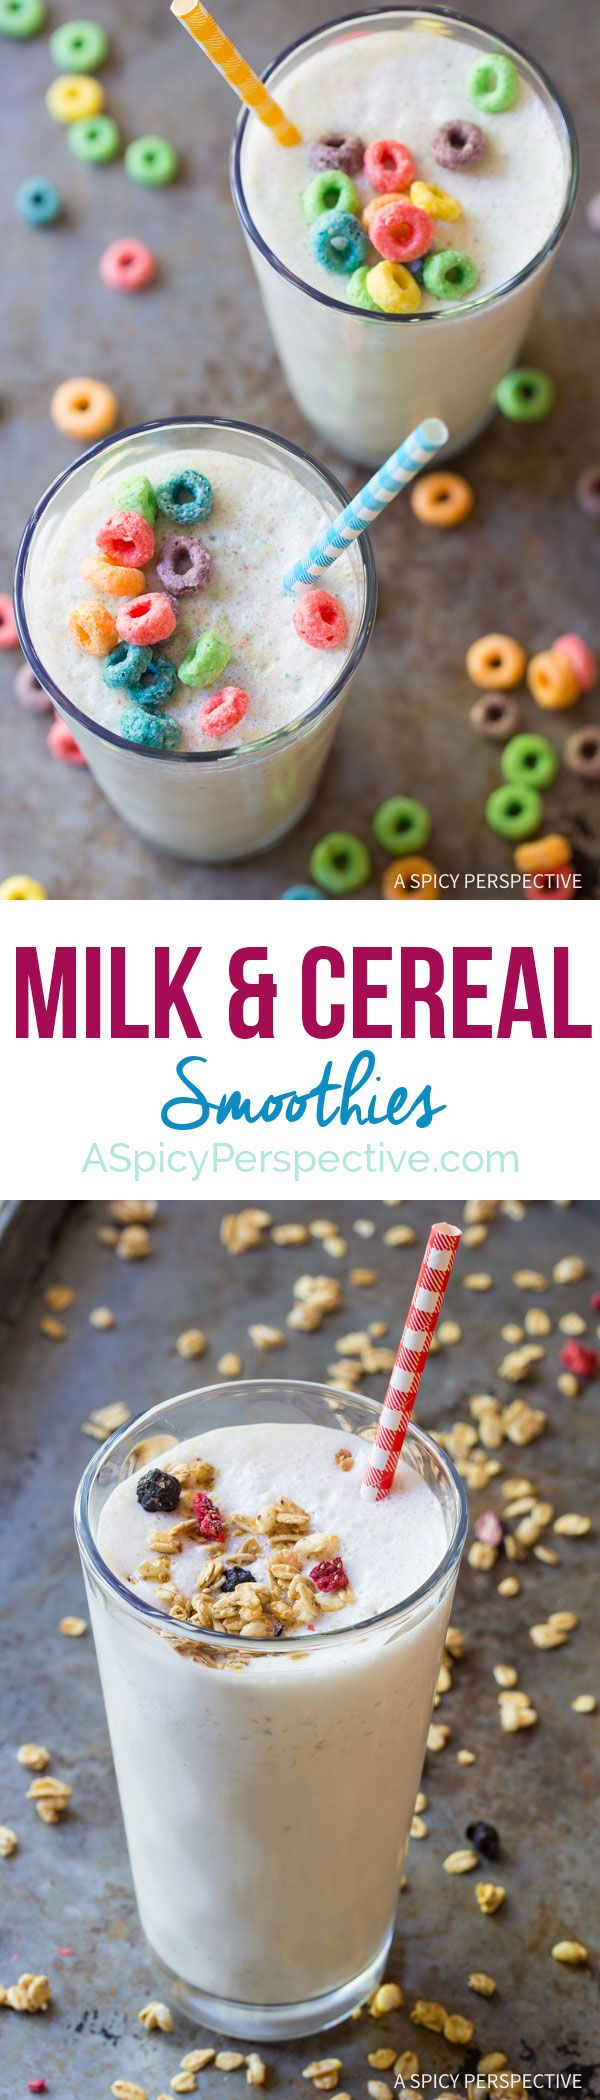 Love this Milk and Cereal Smoothie - Loaded with protein and just a handful of Cereal! ASpicyPerspective.com